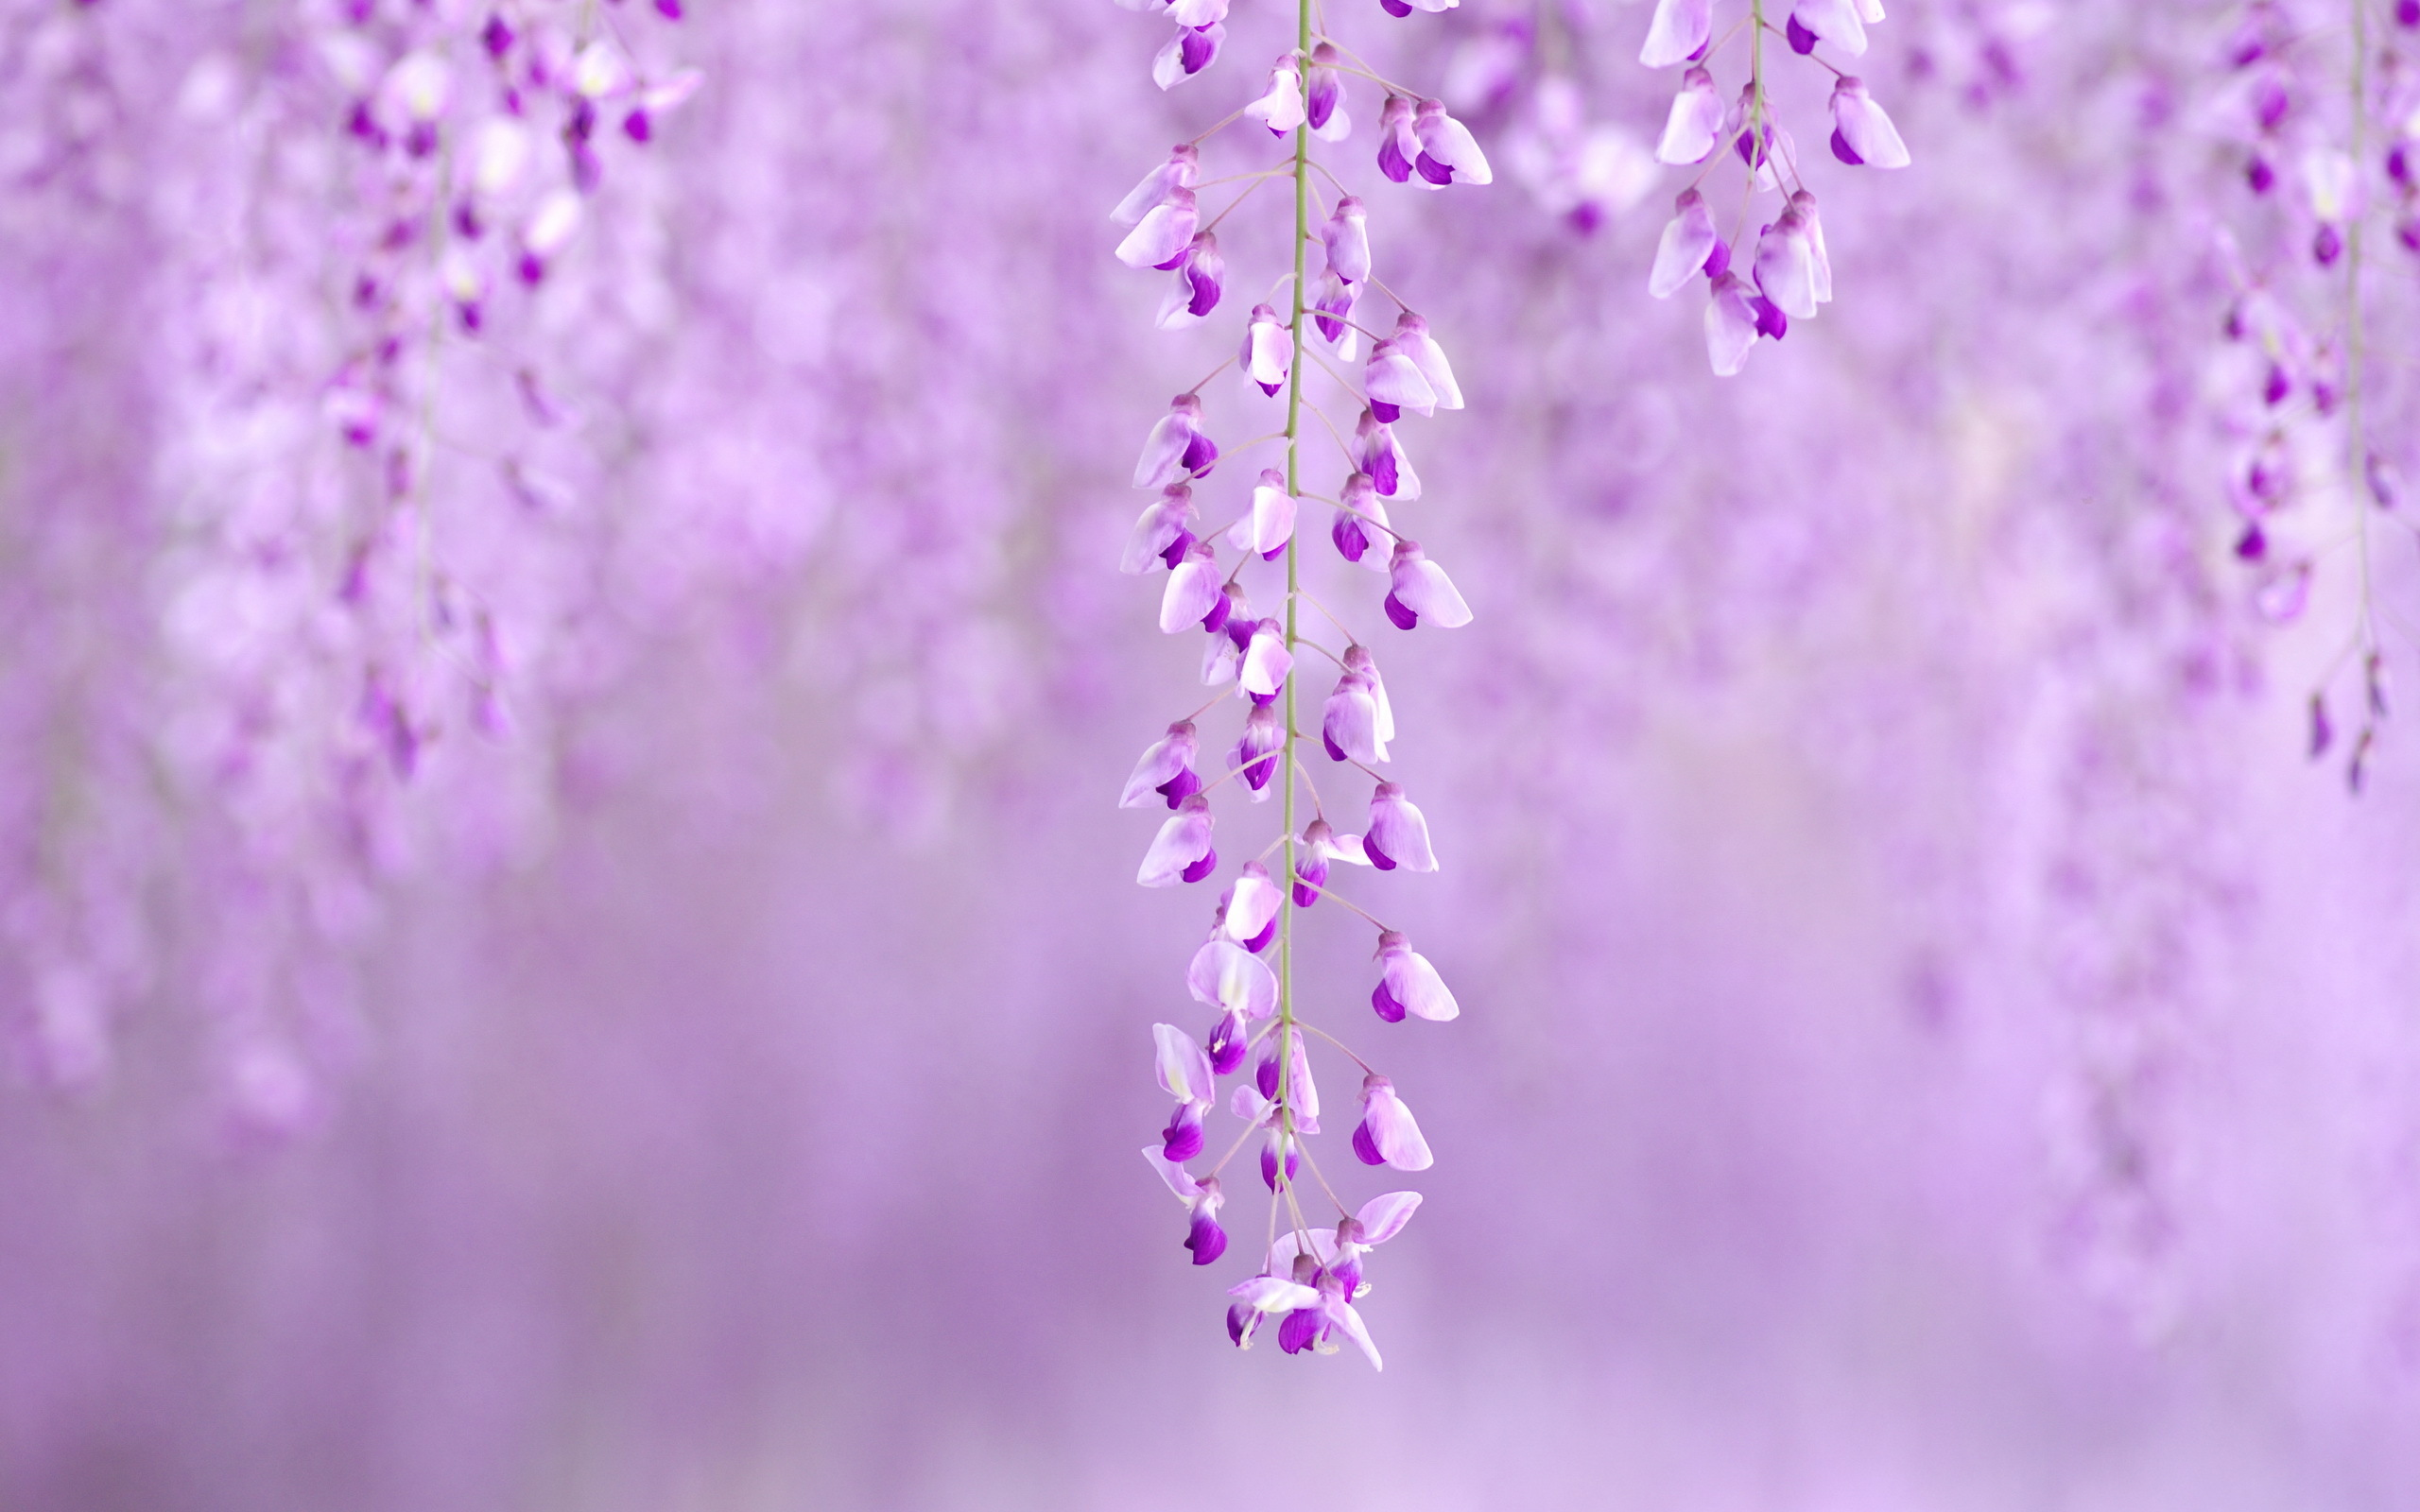 wisteria wallpaper A1